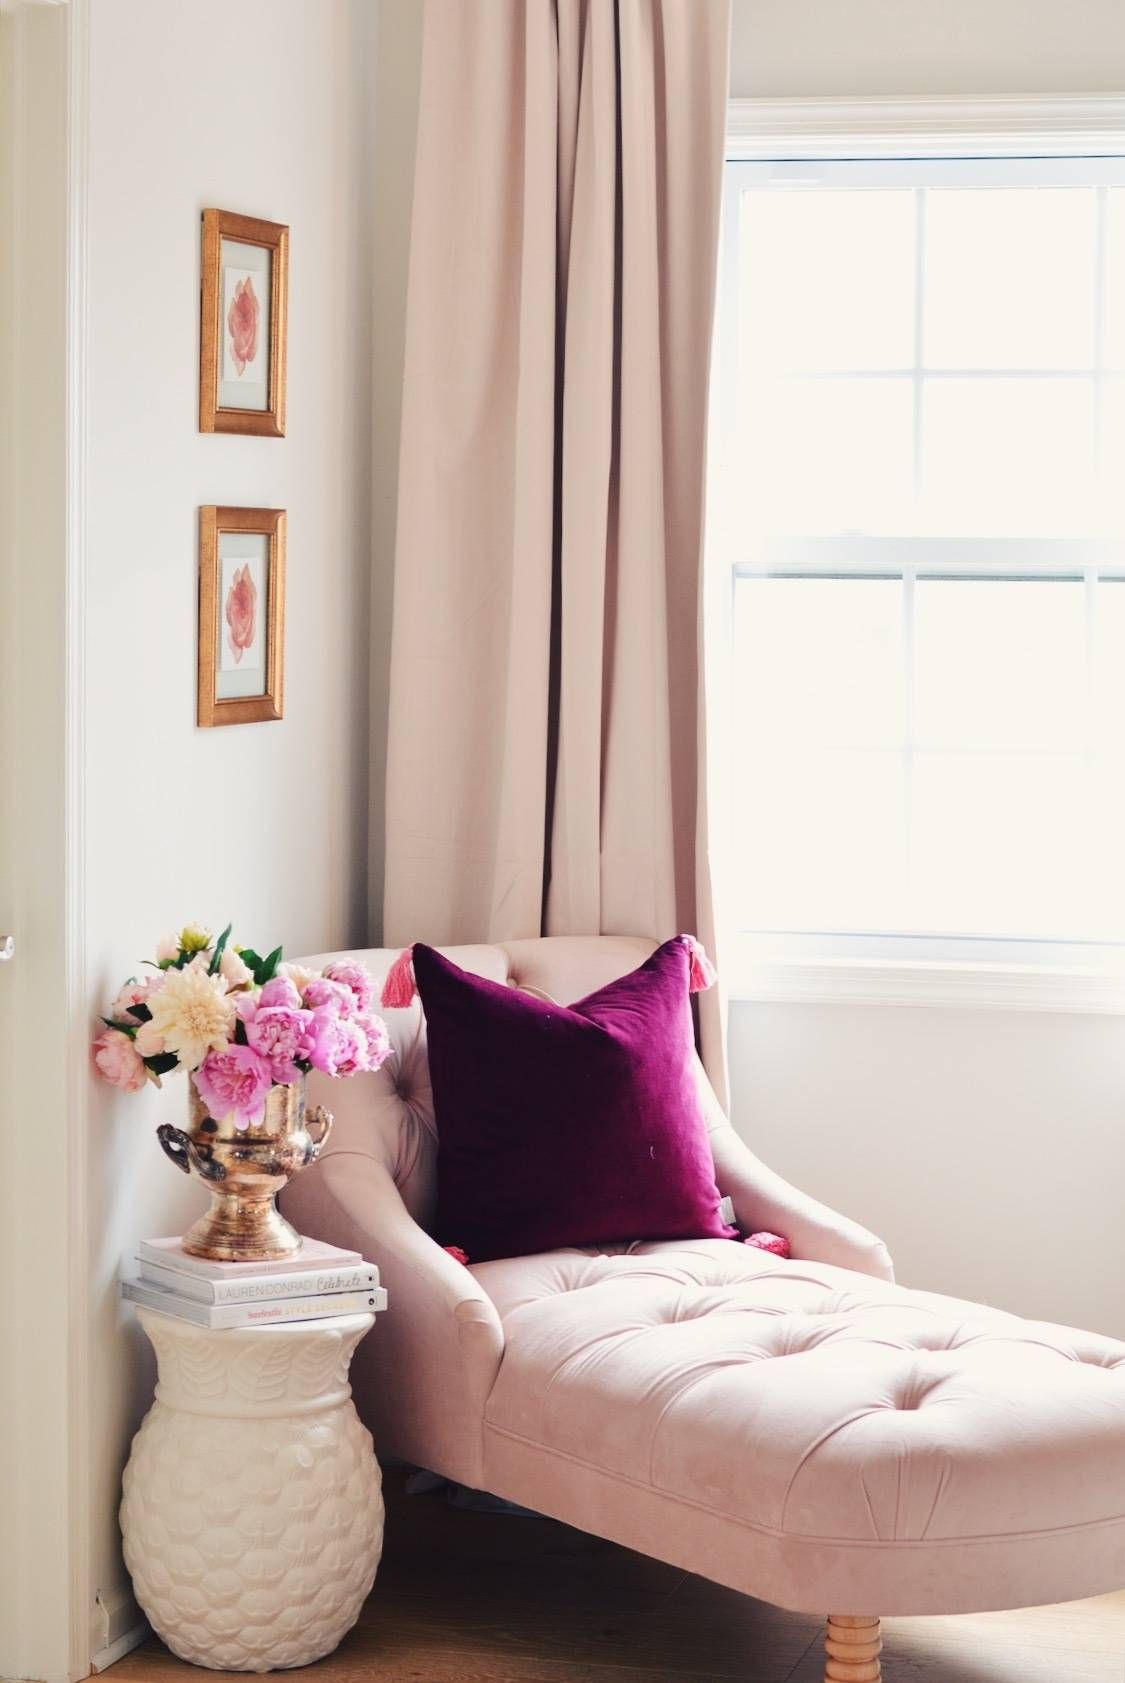 Drew Barrymore Walmart Flower Home Collection – The Pink Dream